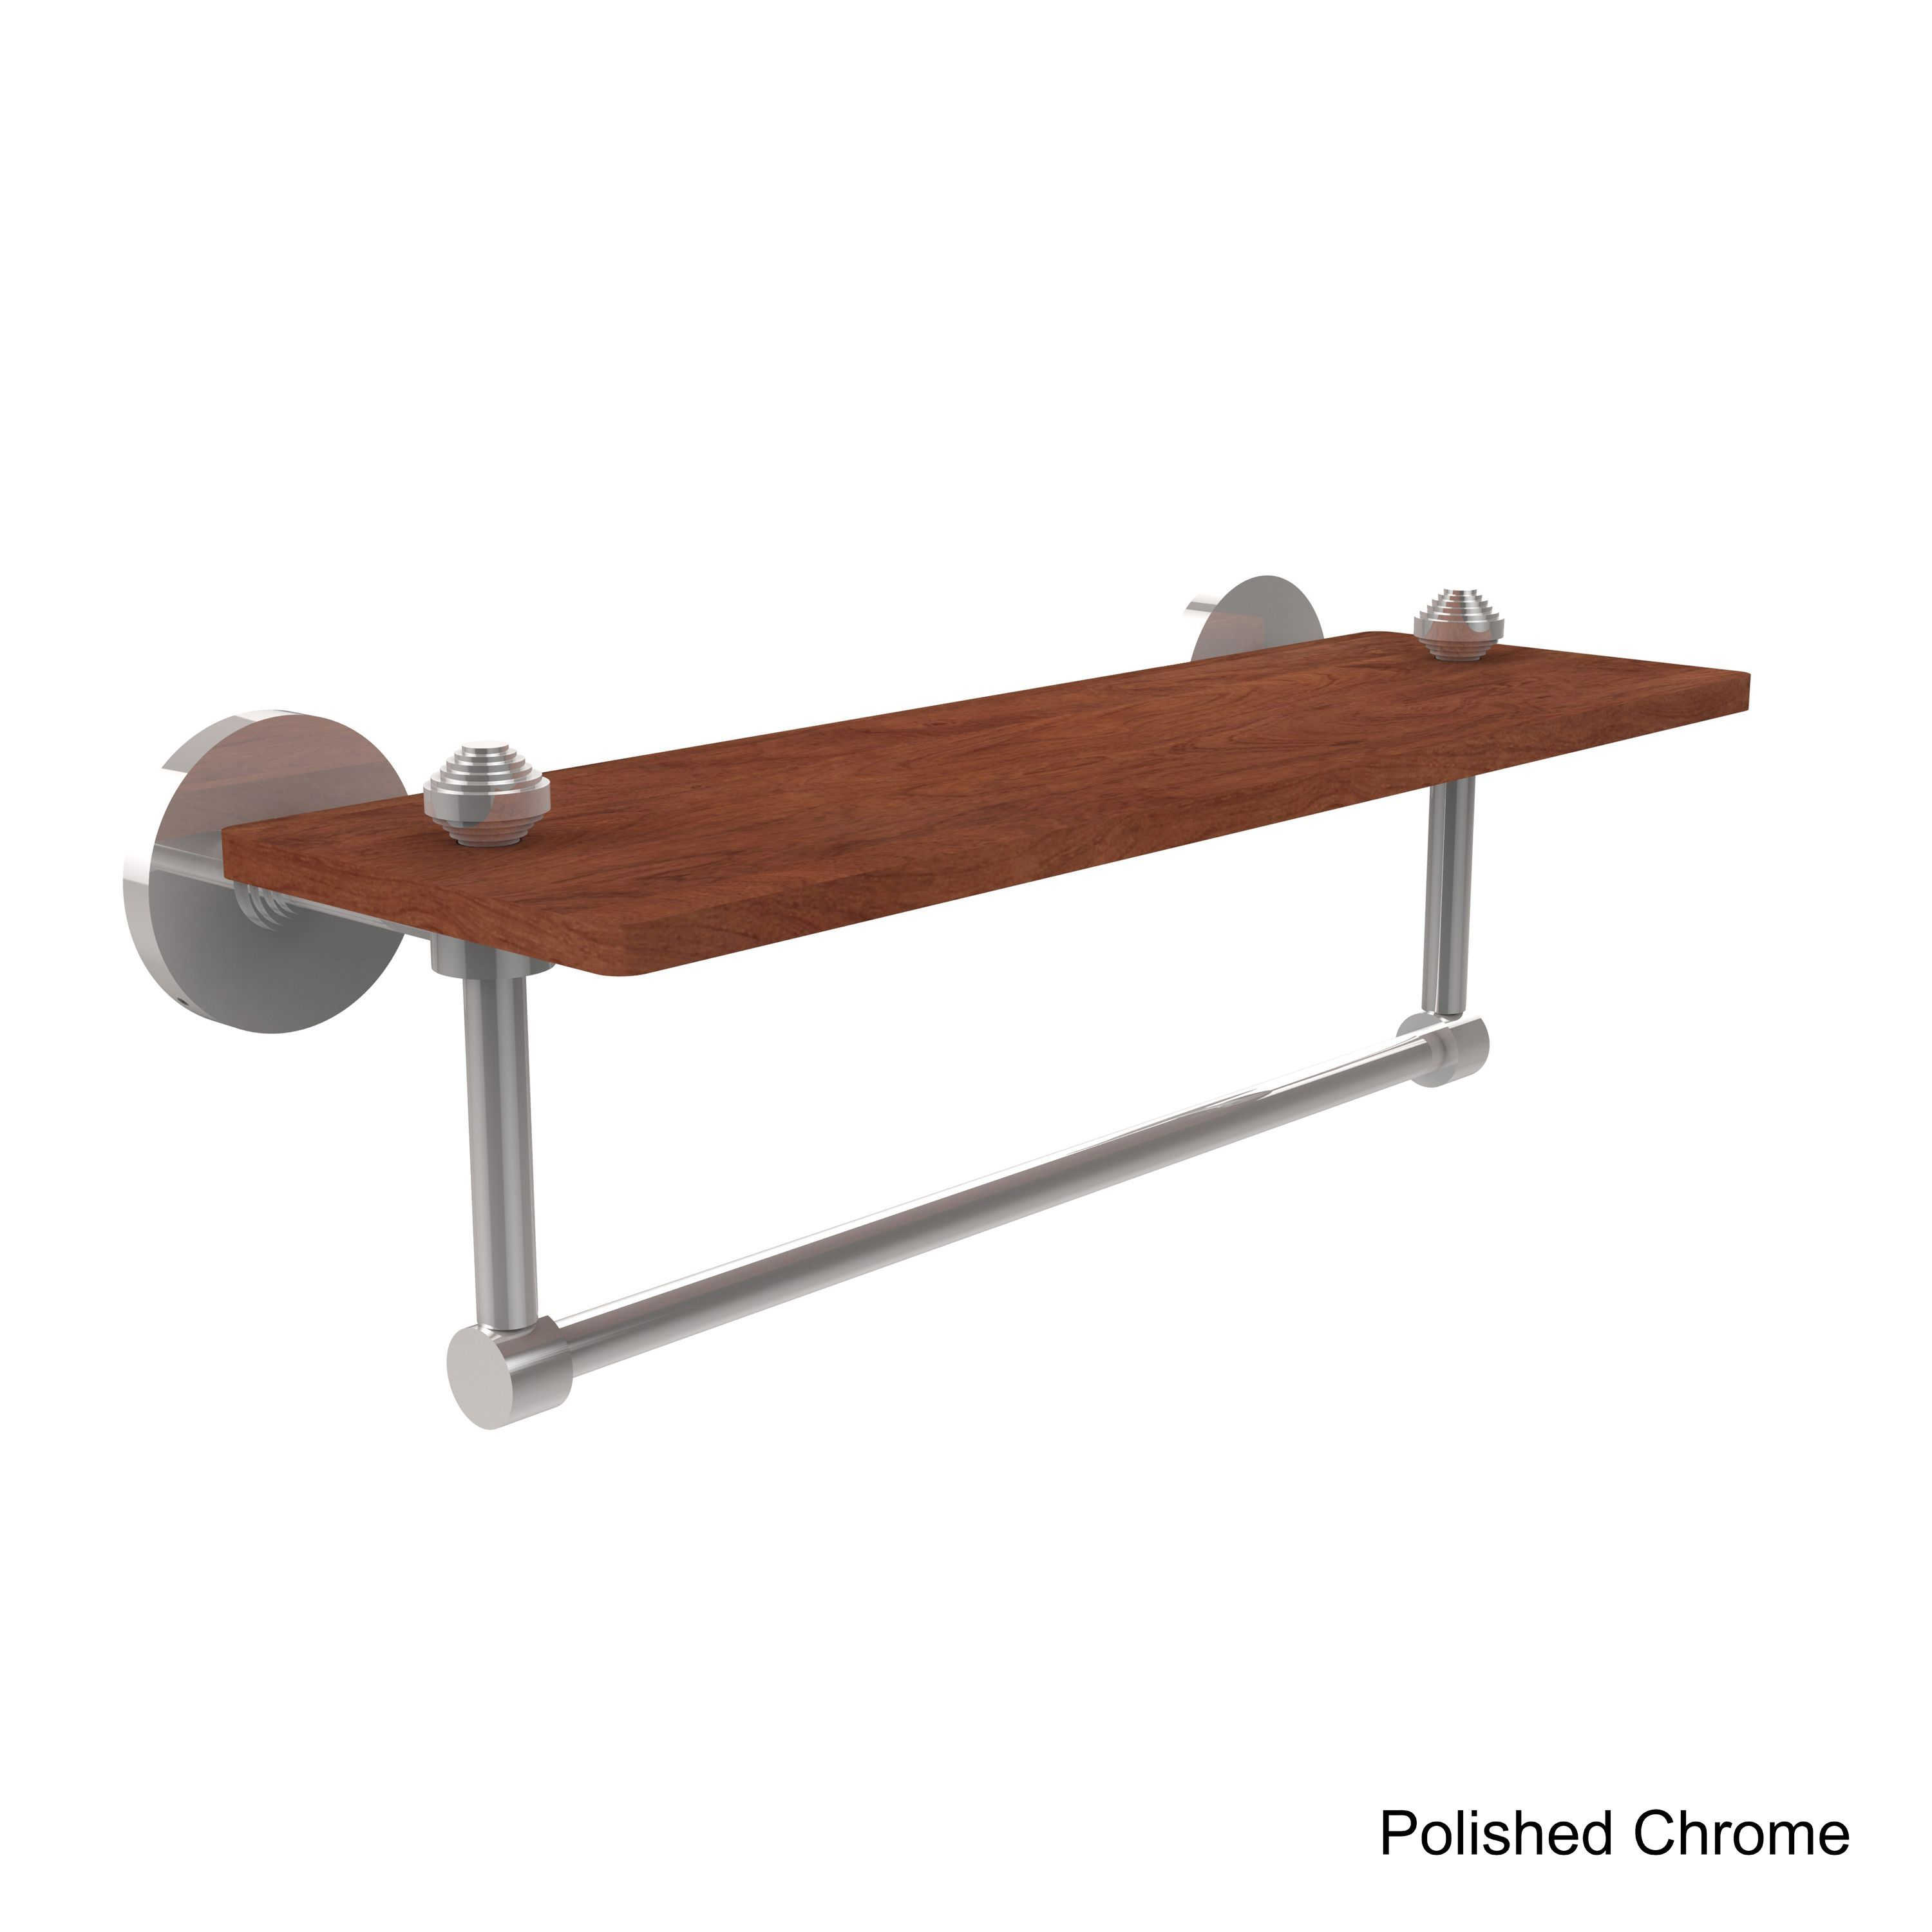 Allied Brass South Beach Collection Solid IPE Ironwood 16-inch Shelf with Integrated Towel Bar (Polished Chrome), Clear